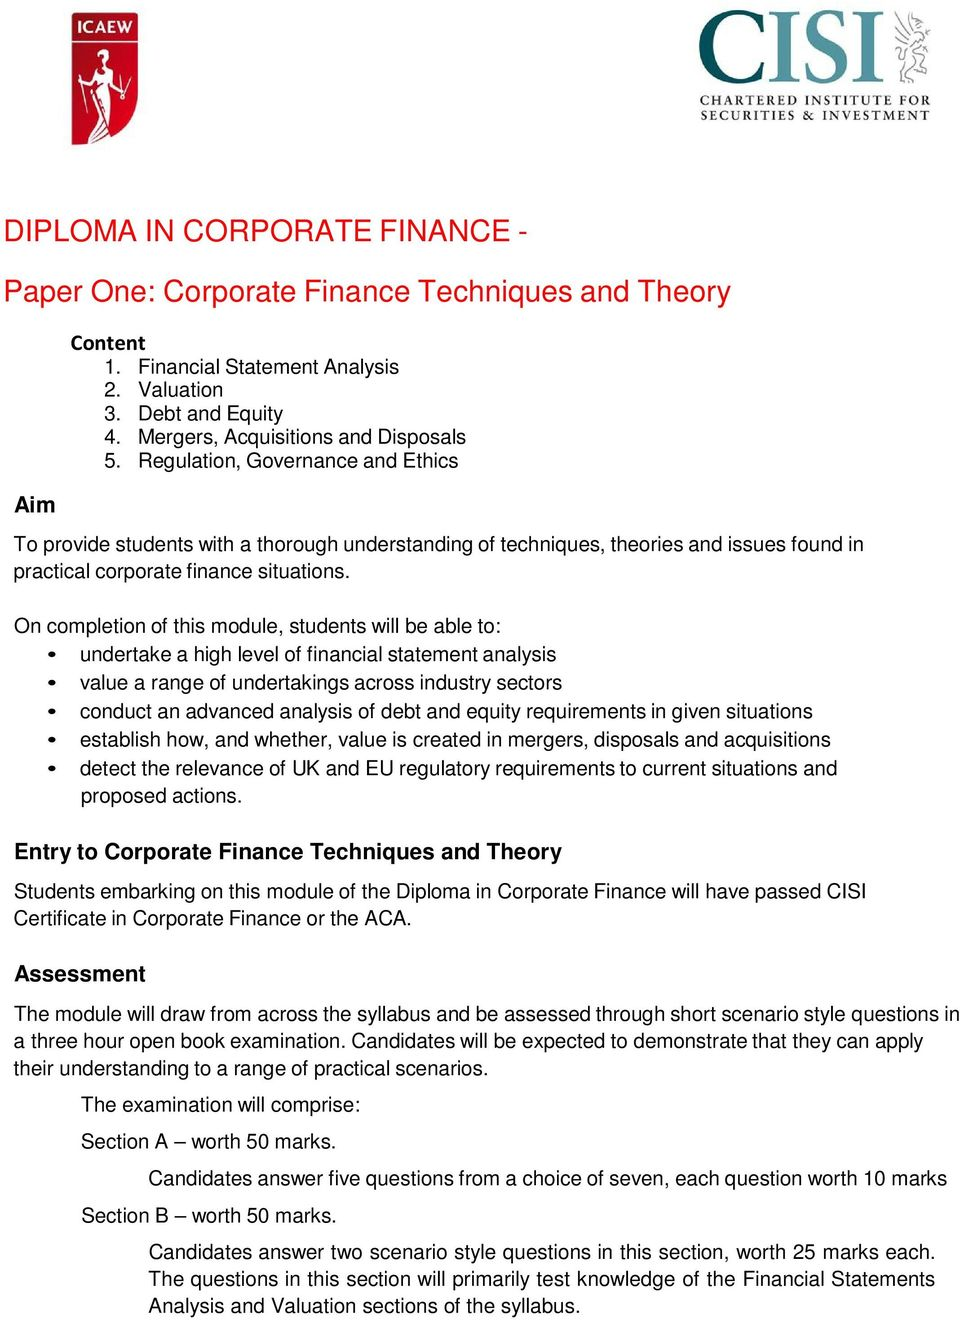 On completion of this module, students will be able to: undertake a high level of financial statement analysis value a range of undertakings across industry sectors conduct an advanced analysis of